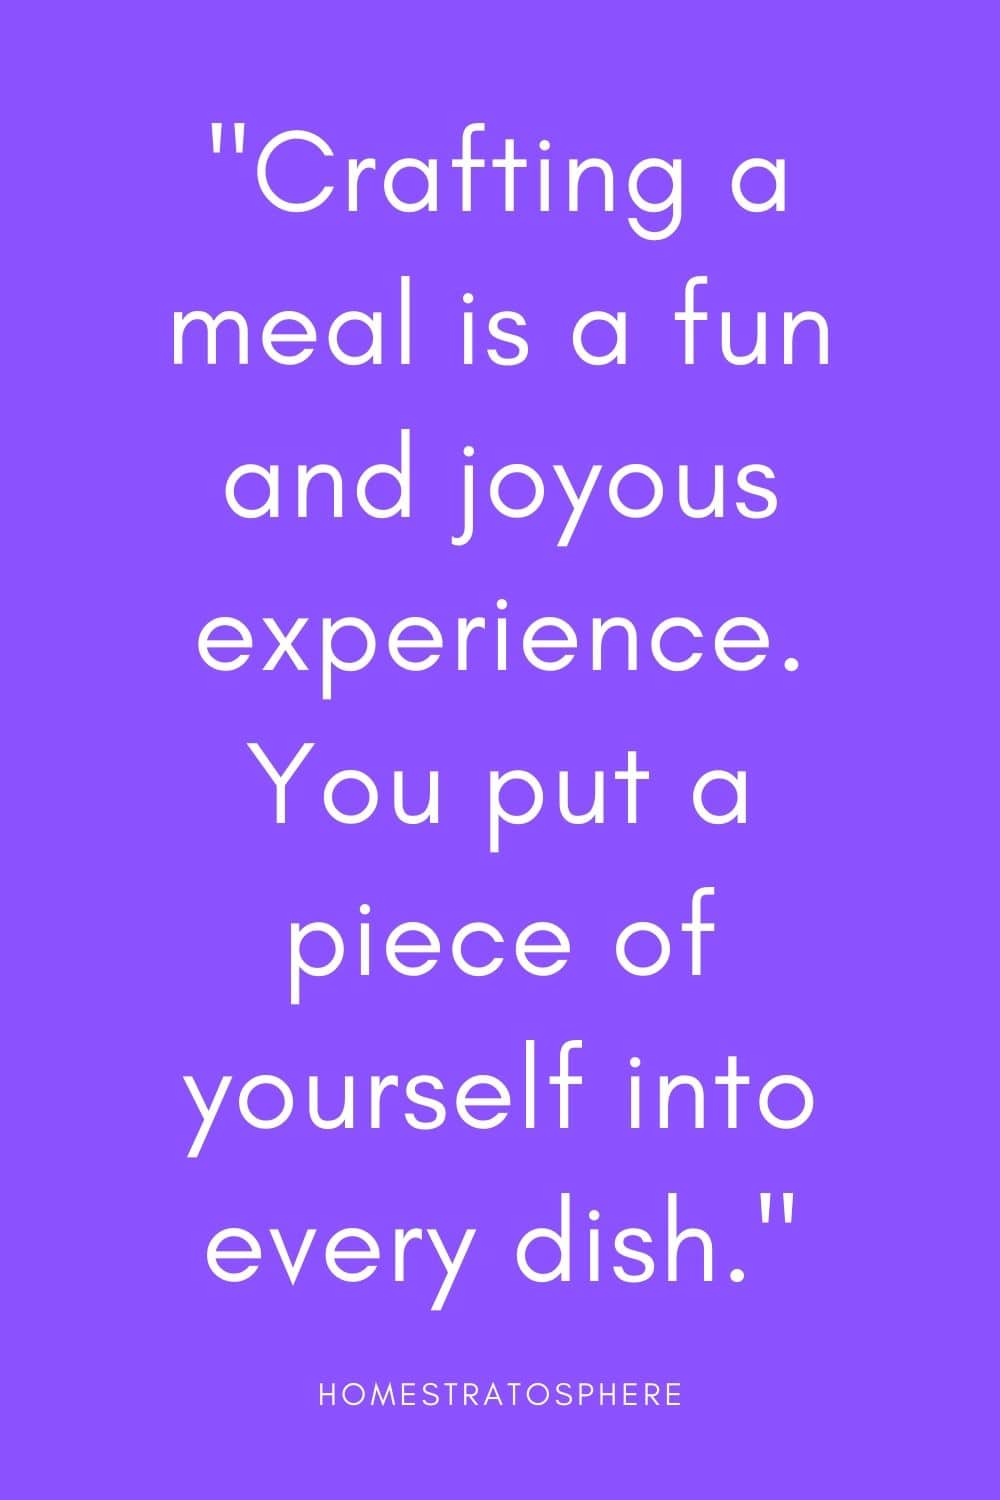 """Crafting a meal is a fun and joyous experience. You put a piece of yourself into every dish."""